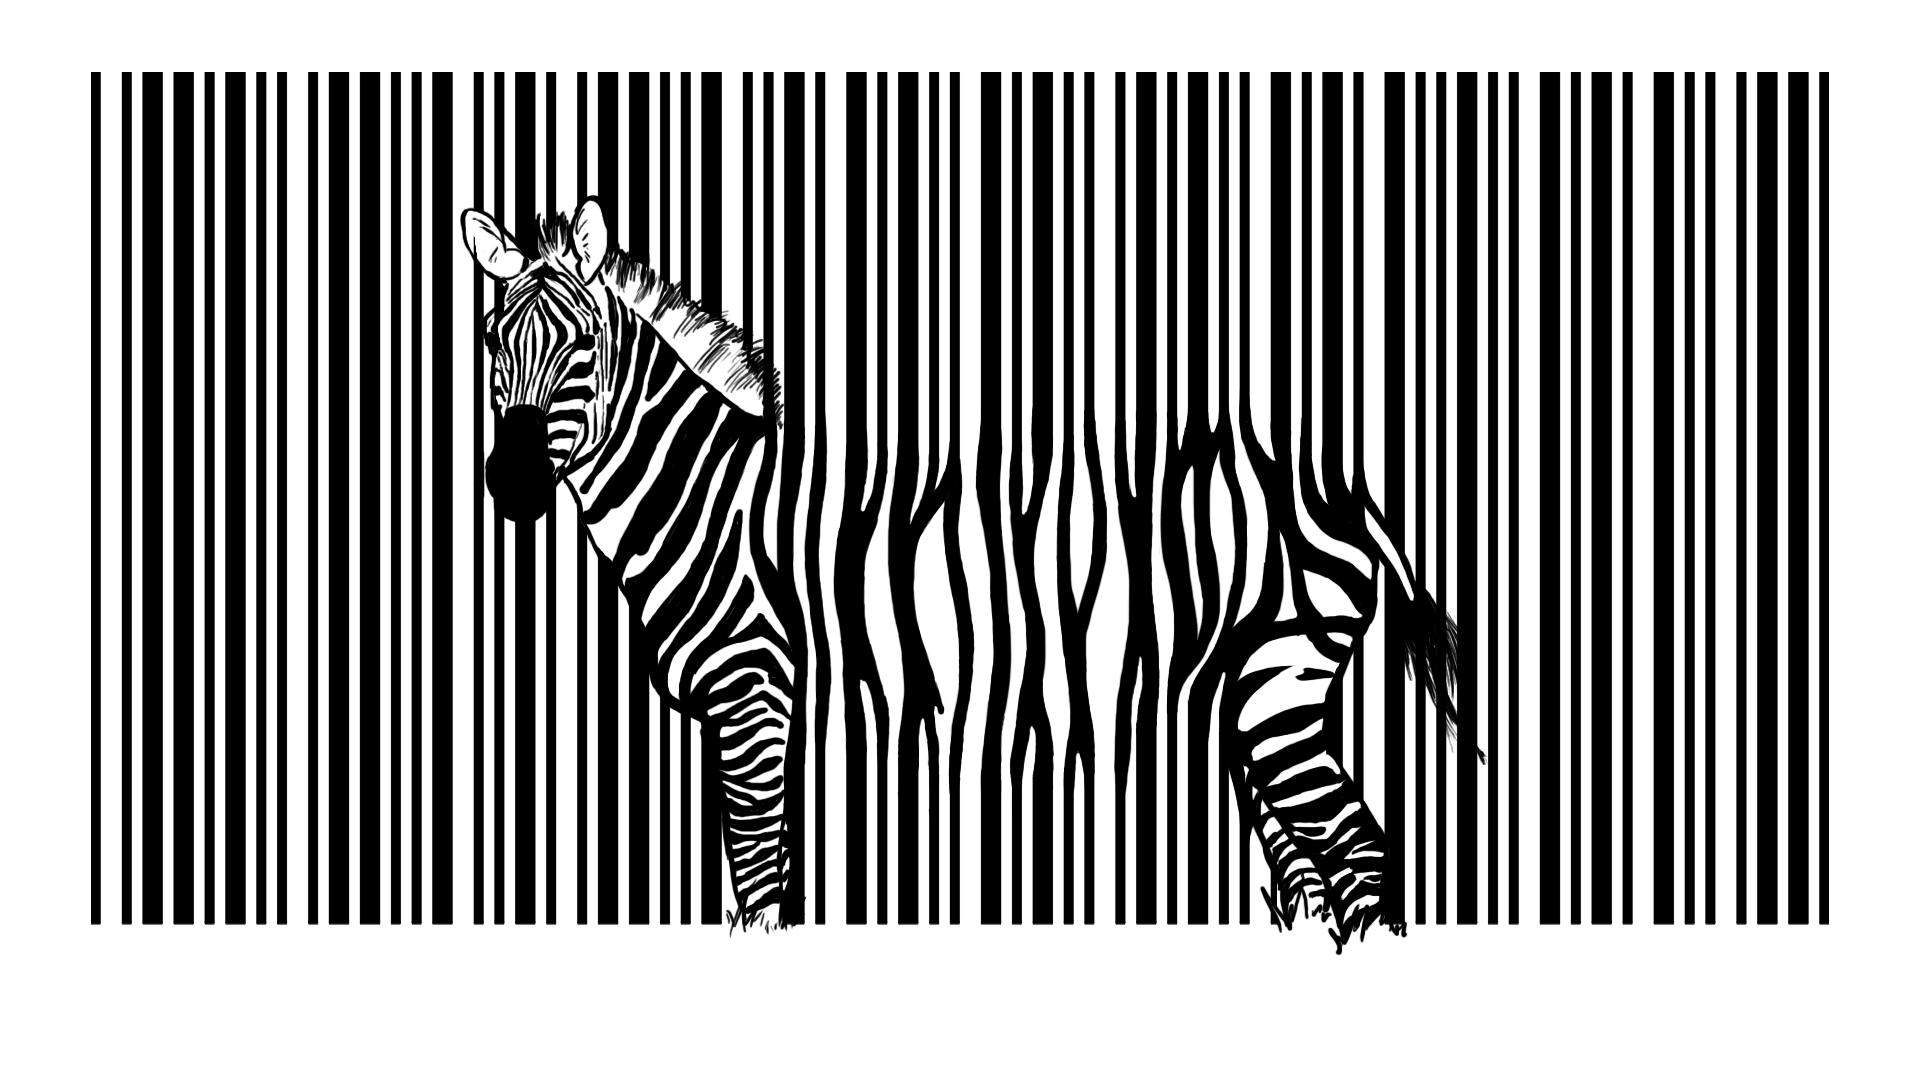 For the ability to design and print your own barcodes, check out our barcode generator software from Seagull Scientific, Teklynx, and Niceware. We also have a wide selection of barcode labels to choose from, or fill out our custom label form to have one of our experts provide you a quote and lead time on your very own custom labels.